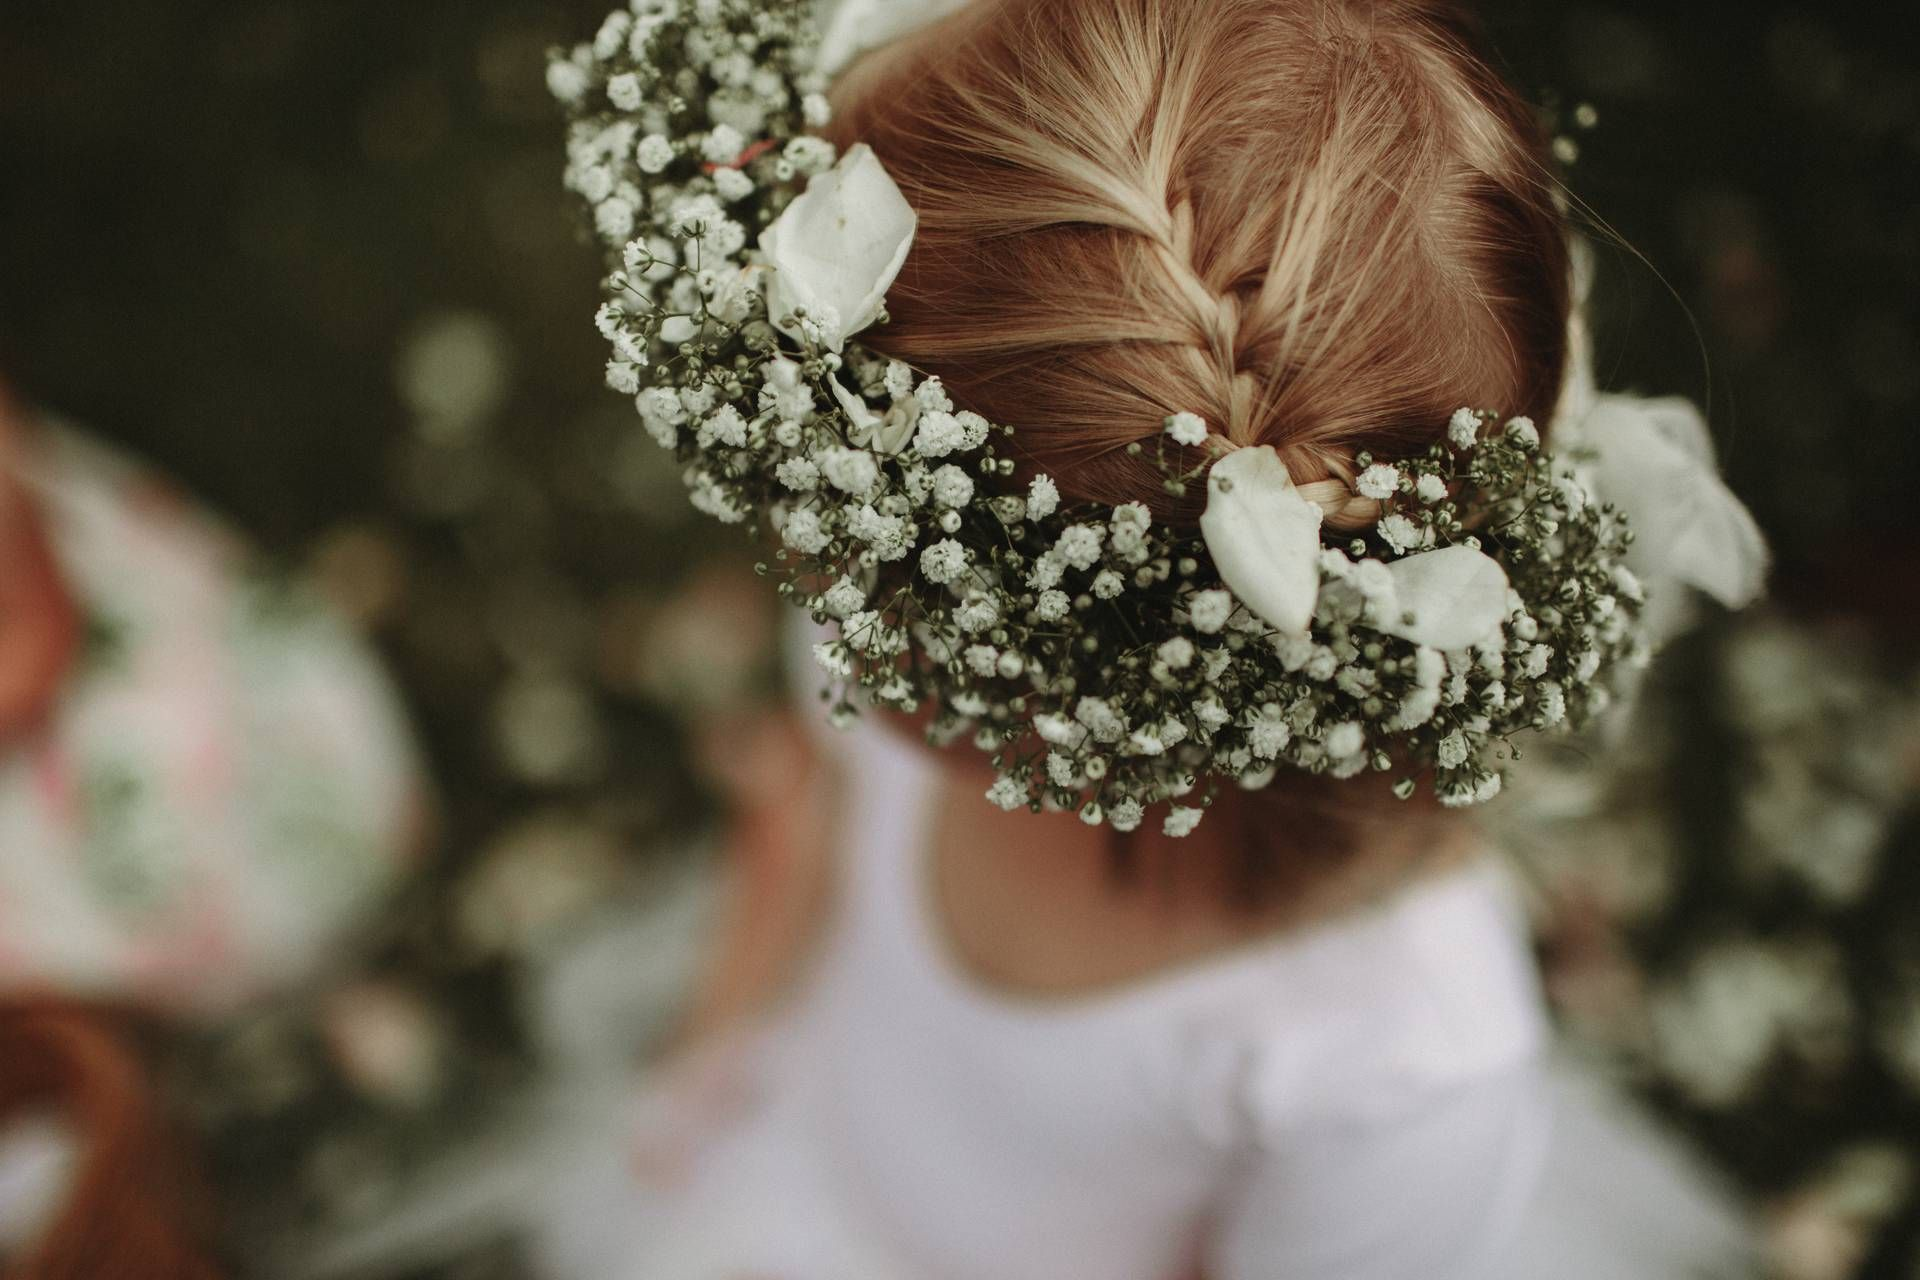 Pure Inspiration for weddings and relationships. Rustic